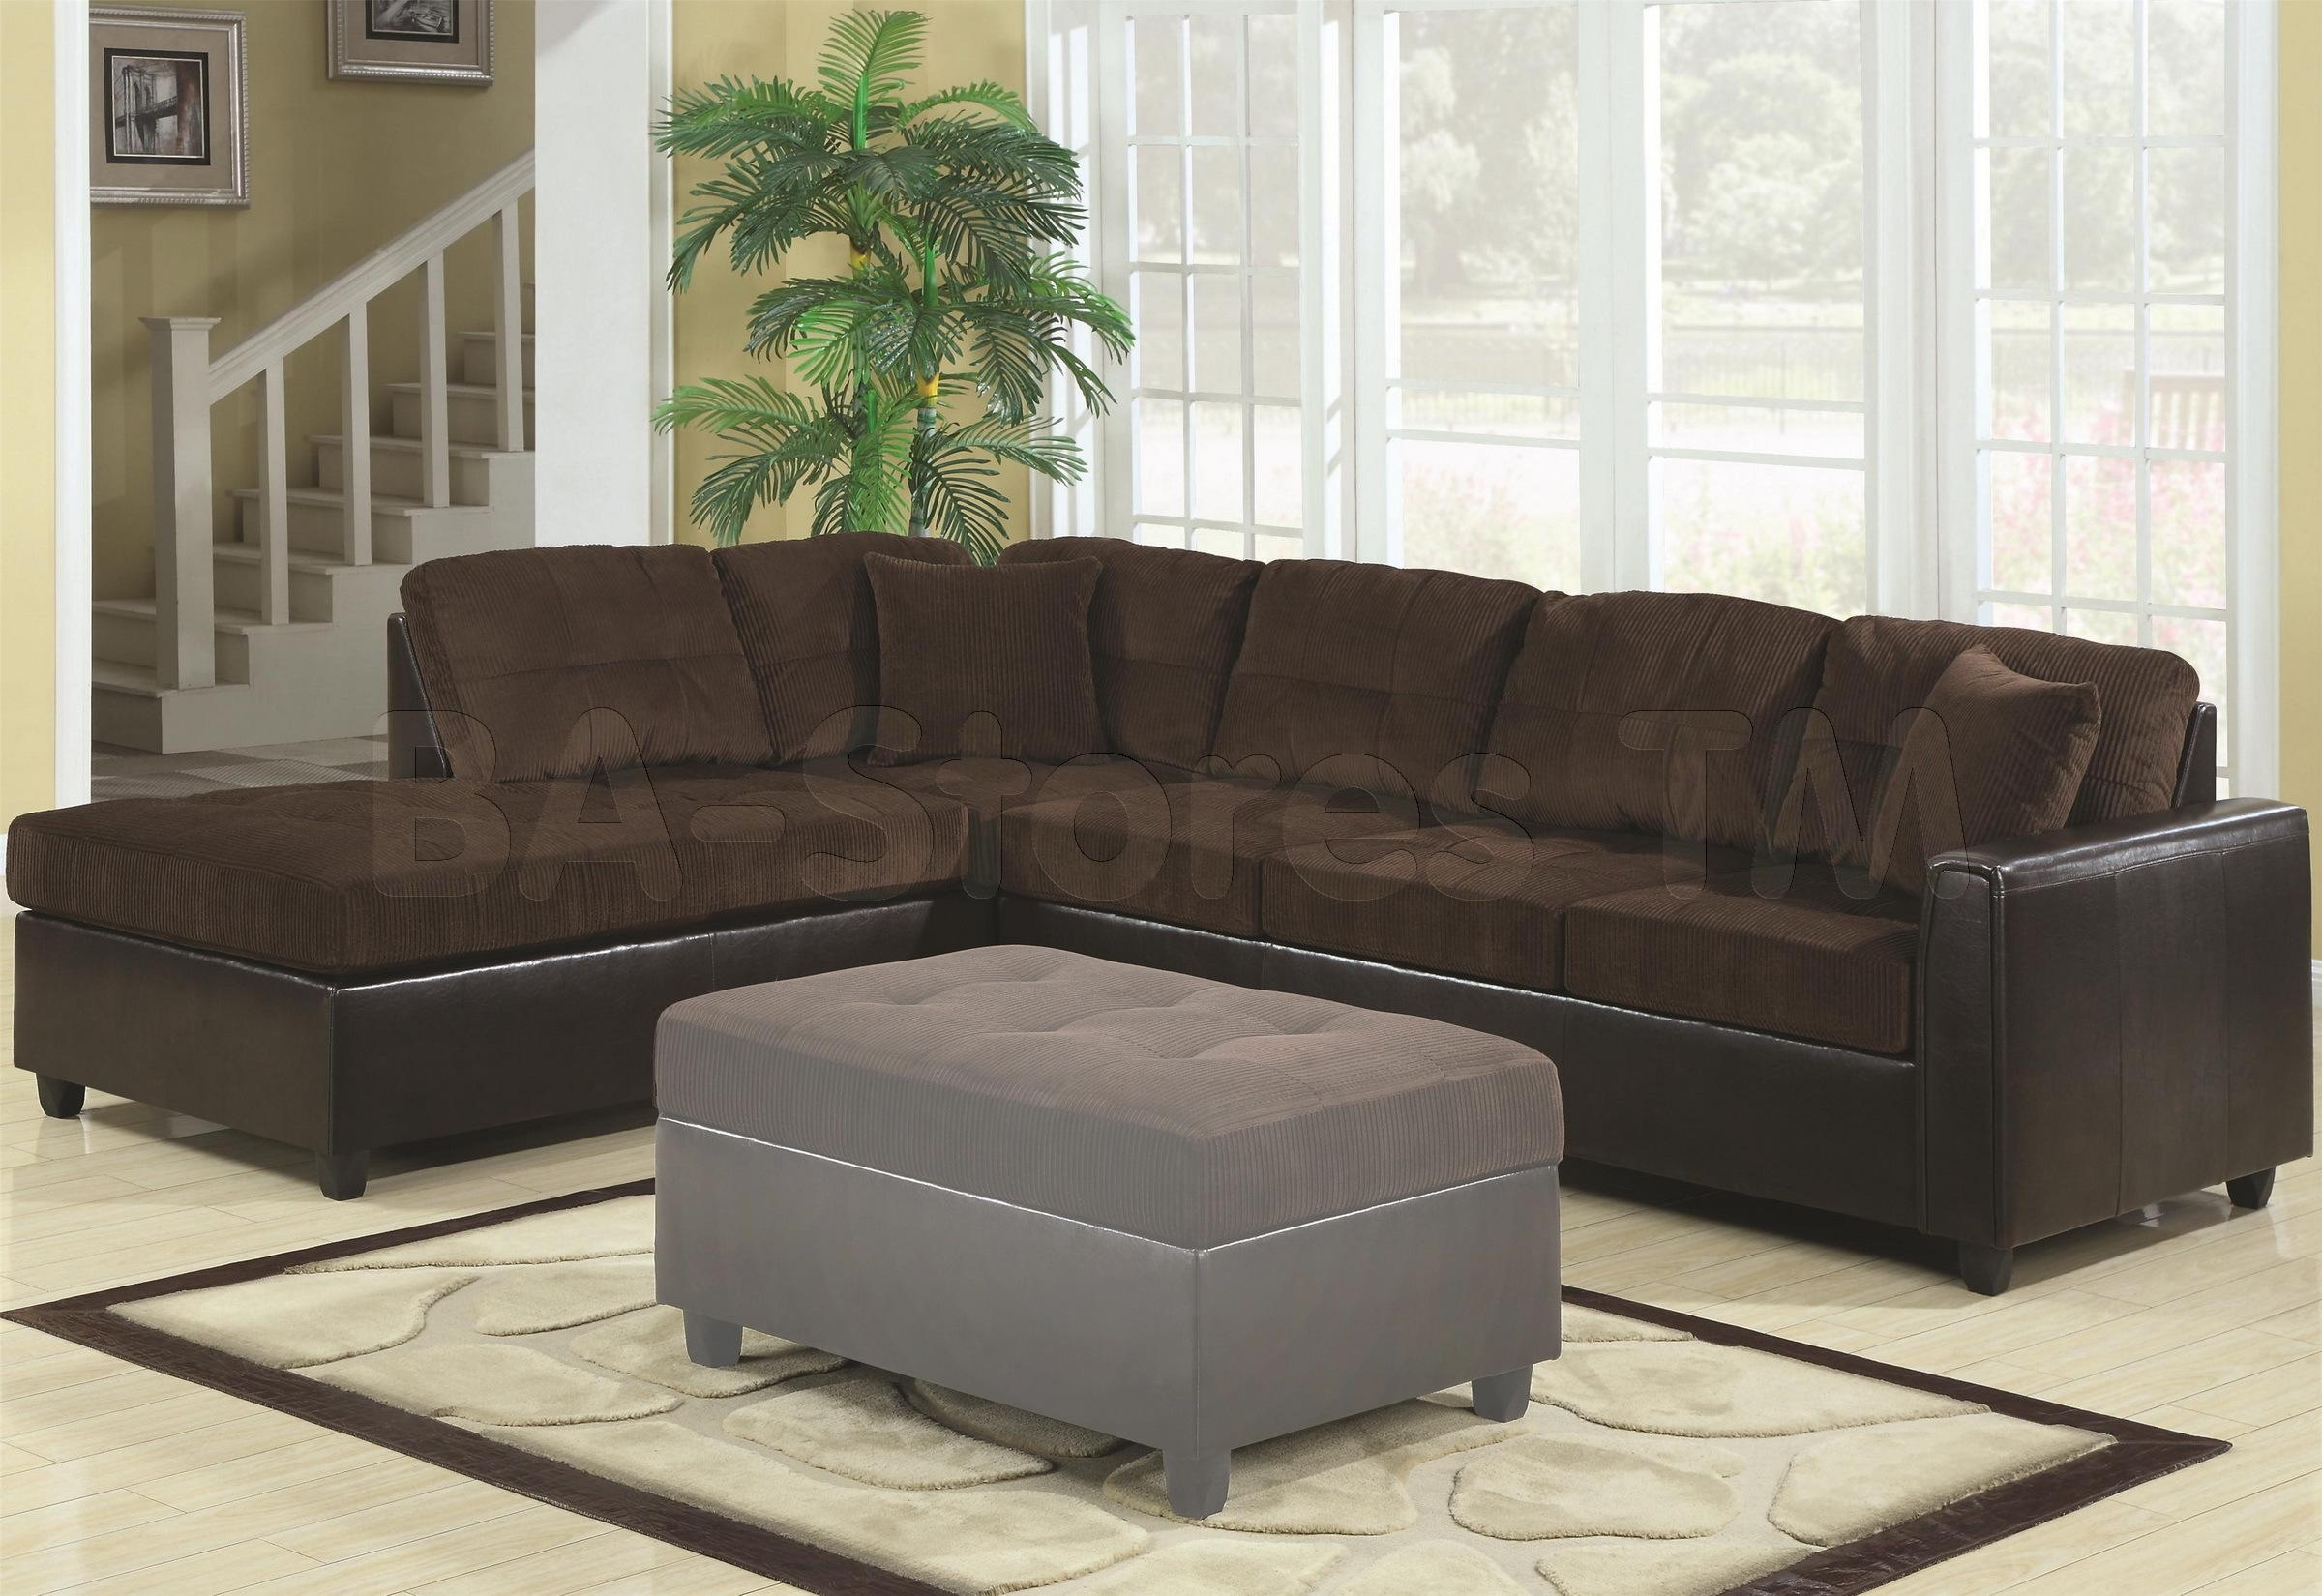 L Shaped Sectional Sofa Small U2013 Ftfpgh Inside Small L Shaped Sectional Sofas  (Photo 5